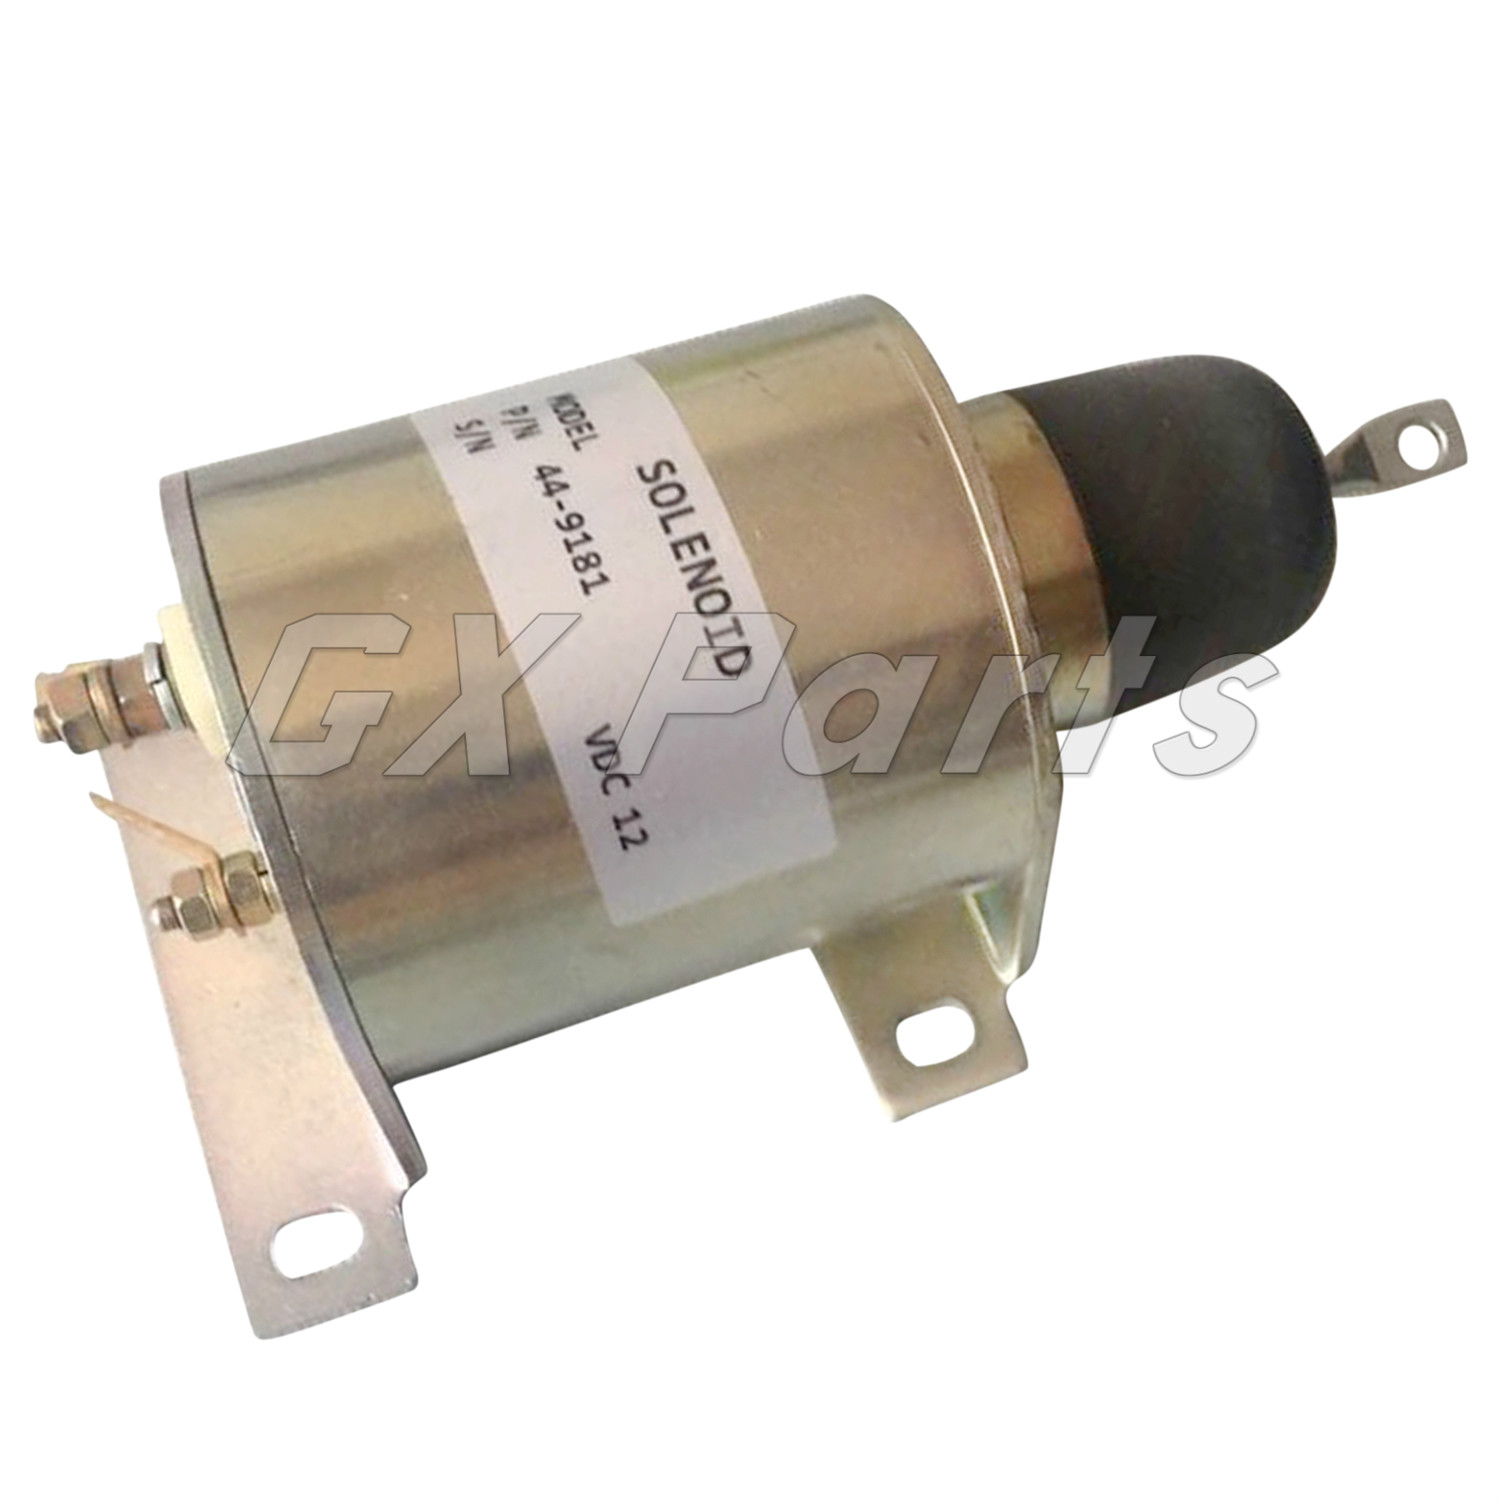 44-918 449181 41-1566 12V Fuel Stop Solenoid For Thermo King TS200 TS300 SL400 SL100 SL200 Engine M-44-9181